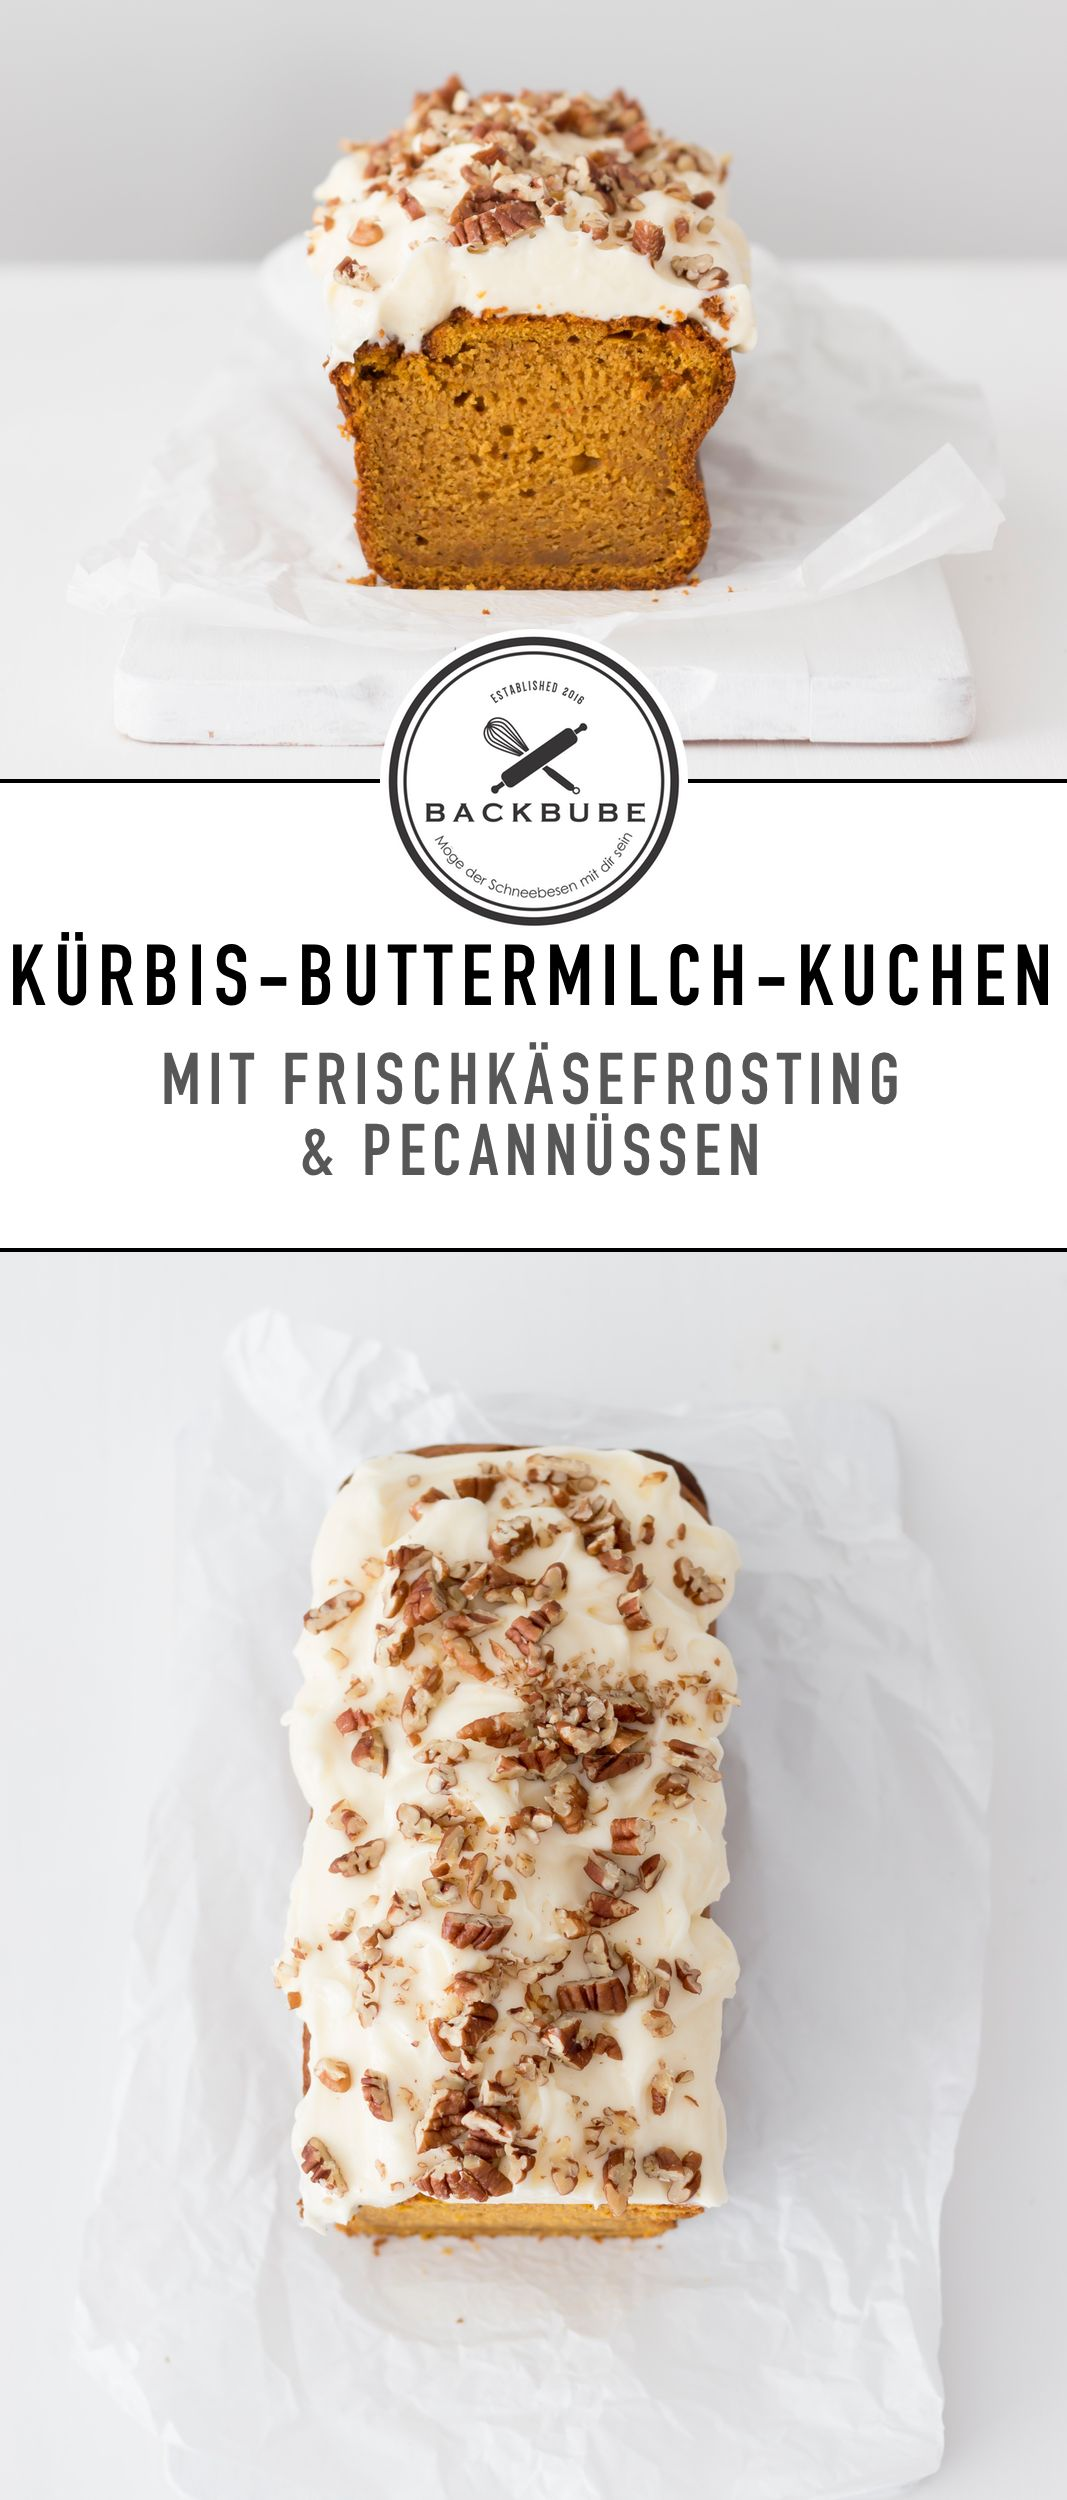 Kürbis-Buttermilchkuchen mit Frischkäsefrosting und Pecannüssen / pumpkin buttermilk cake with cream cheese frosting and pecans / www.backbube.com - Foodblog (Bake Cheesecake Recipe) #creamcheeserecipes